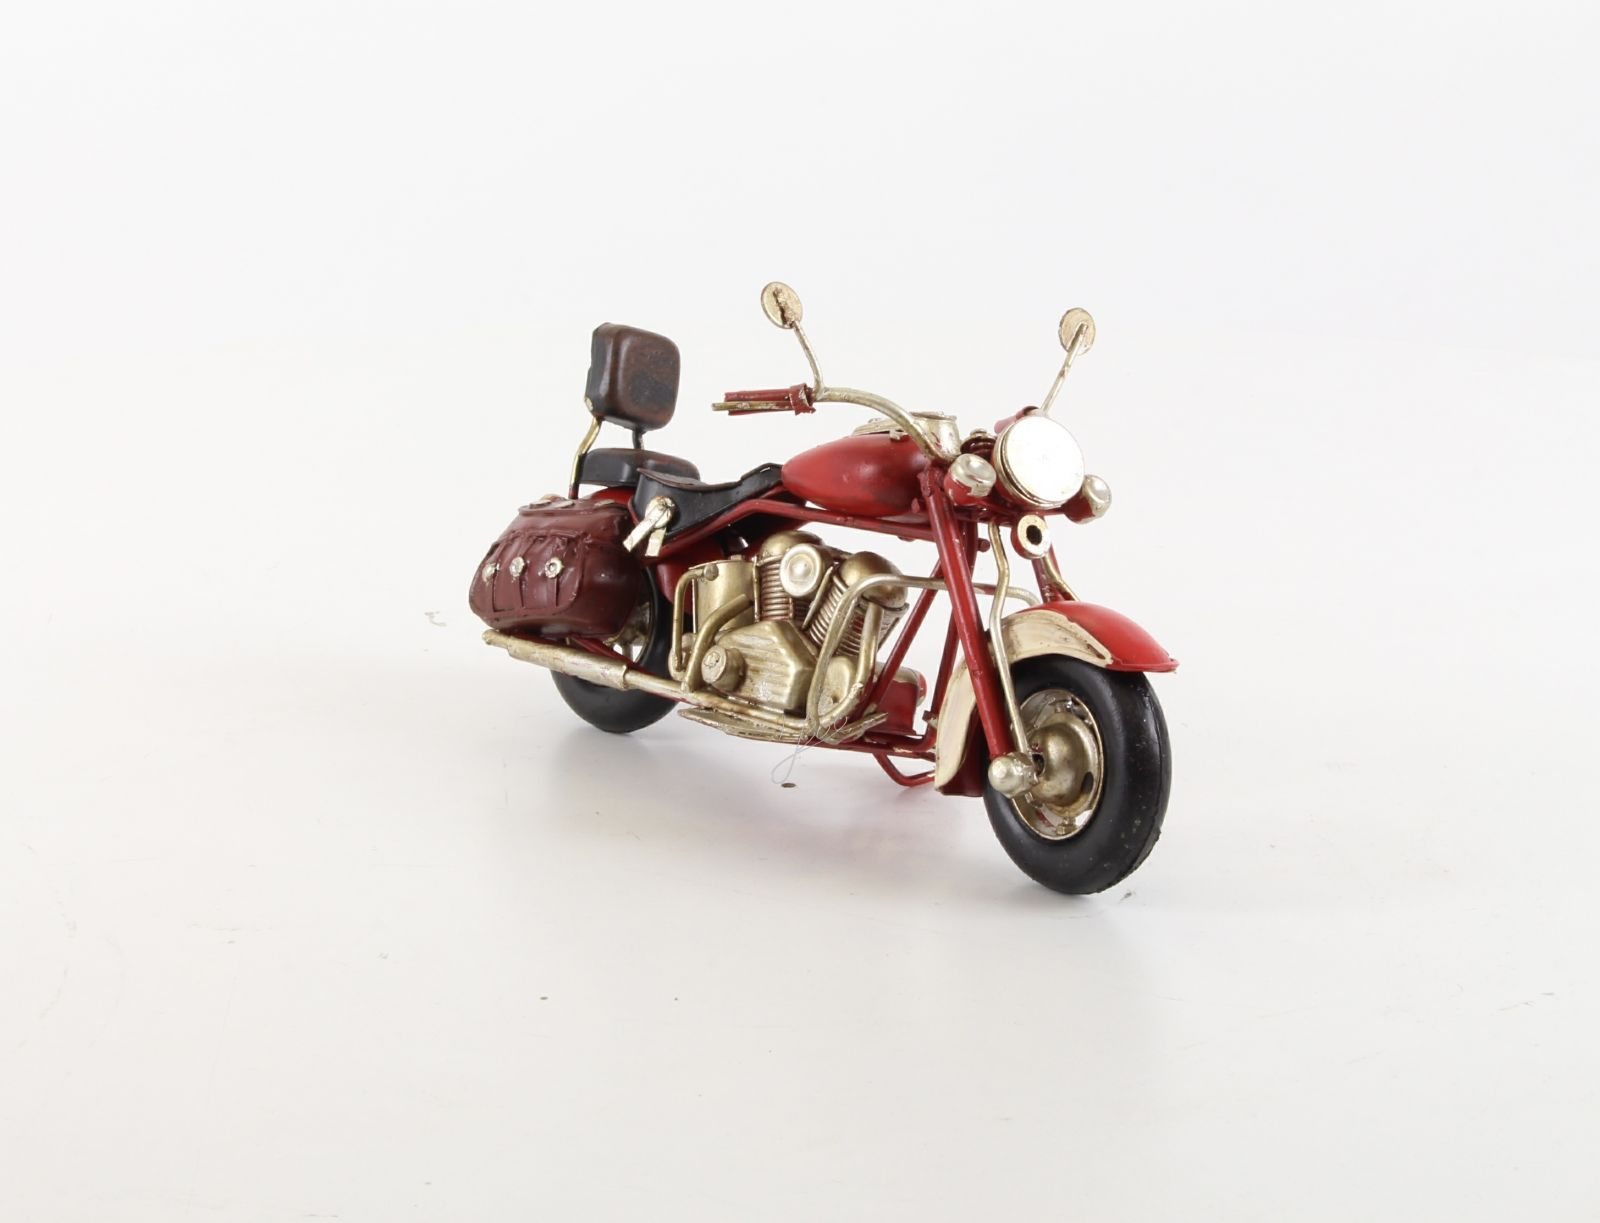 A TIN MODEL OF A MOTORCYCLE RETRO BrokInCZ